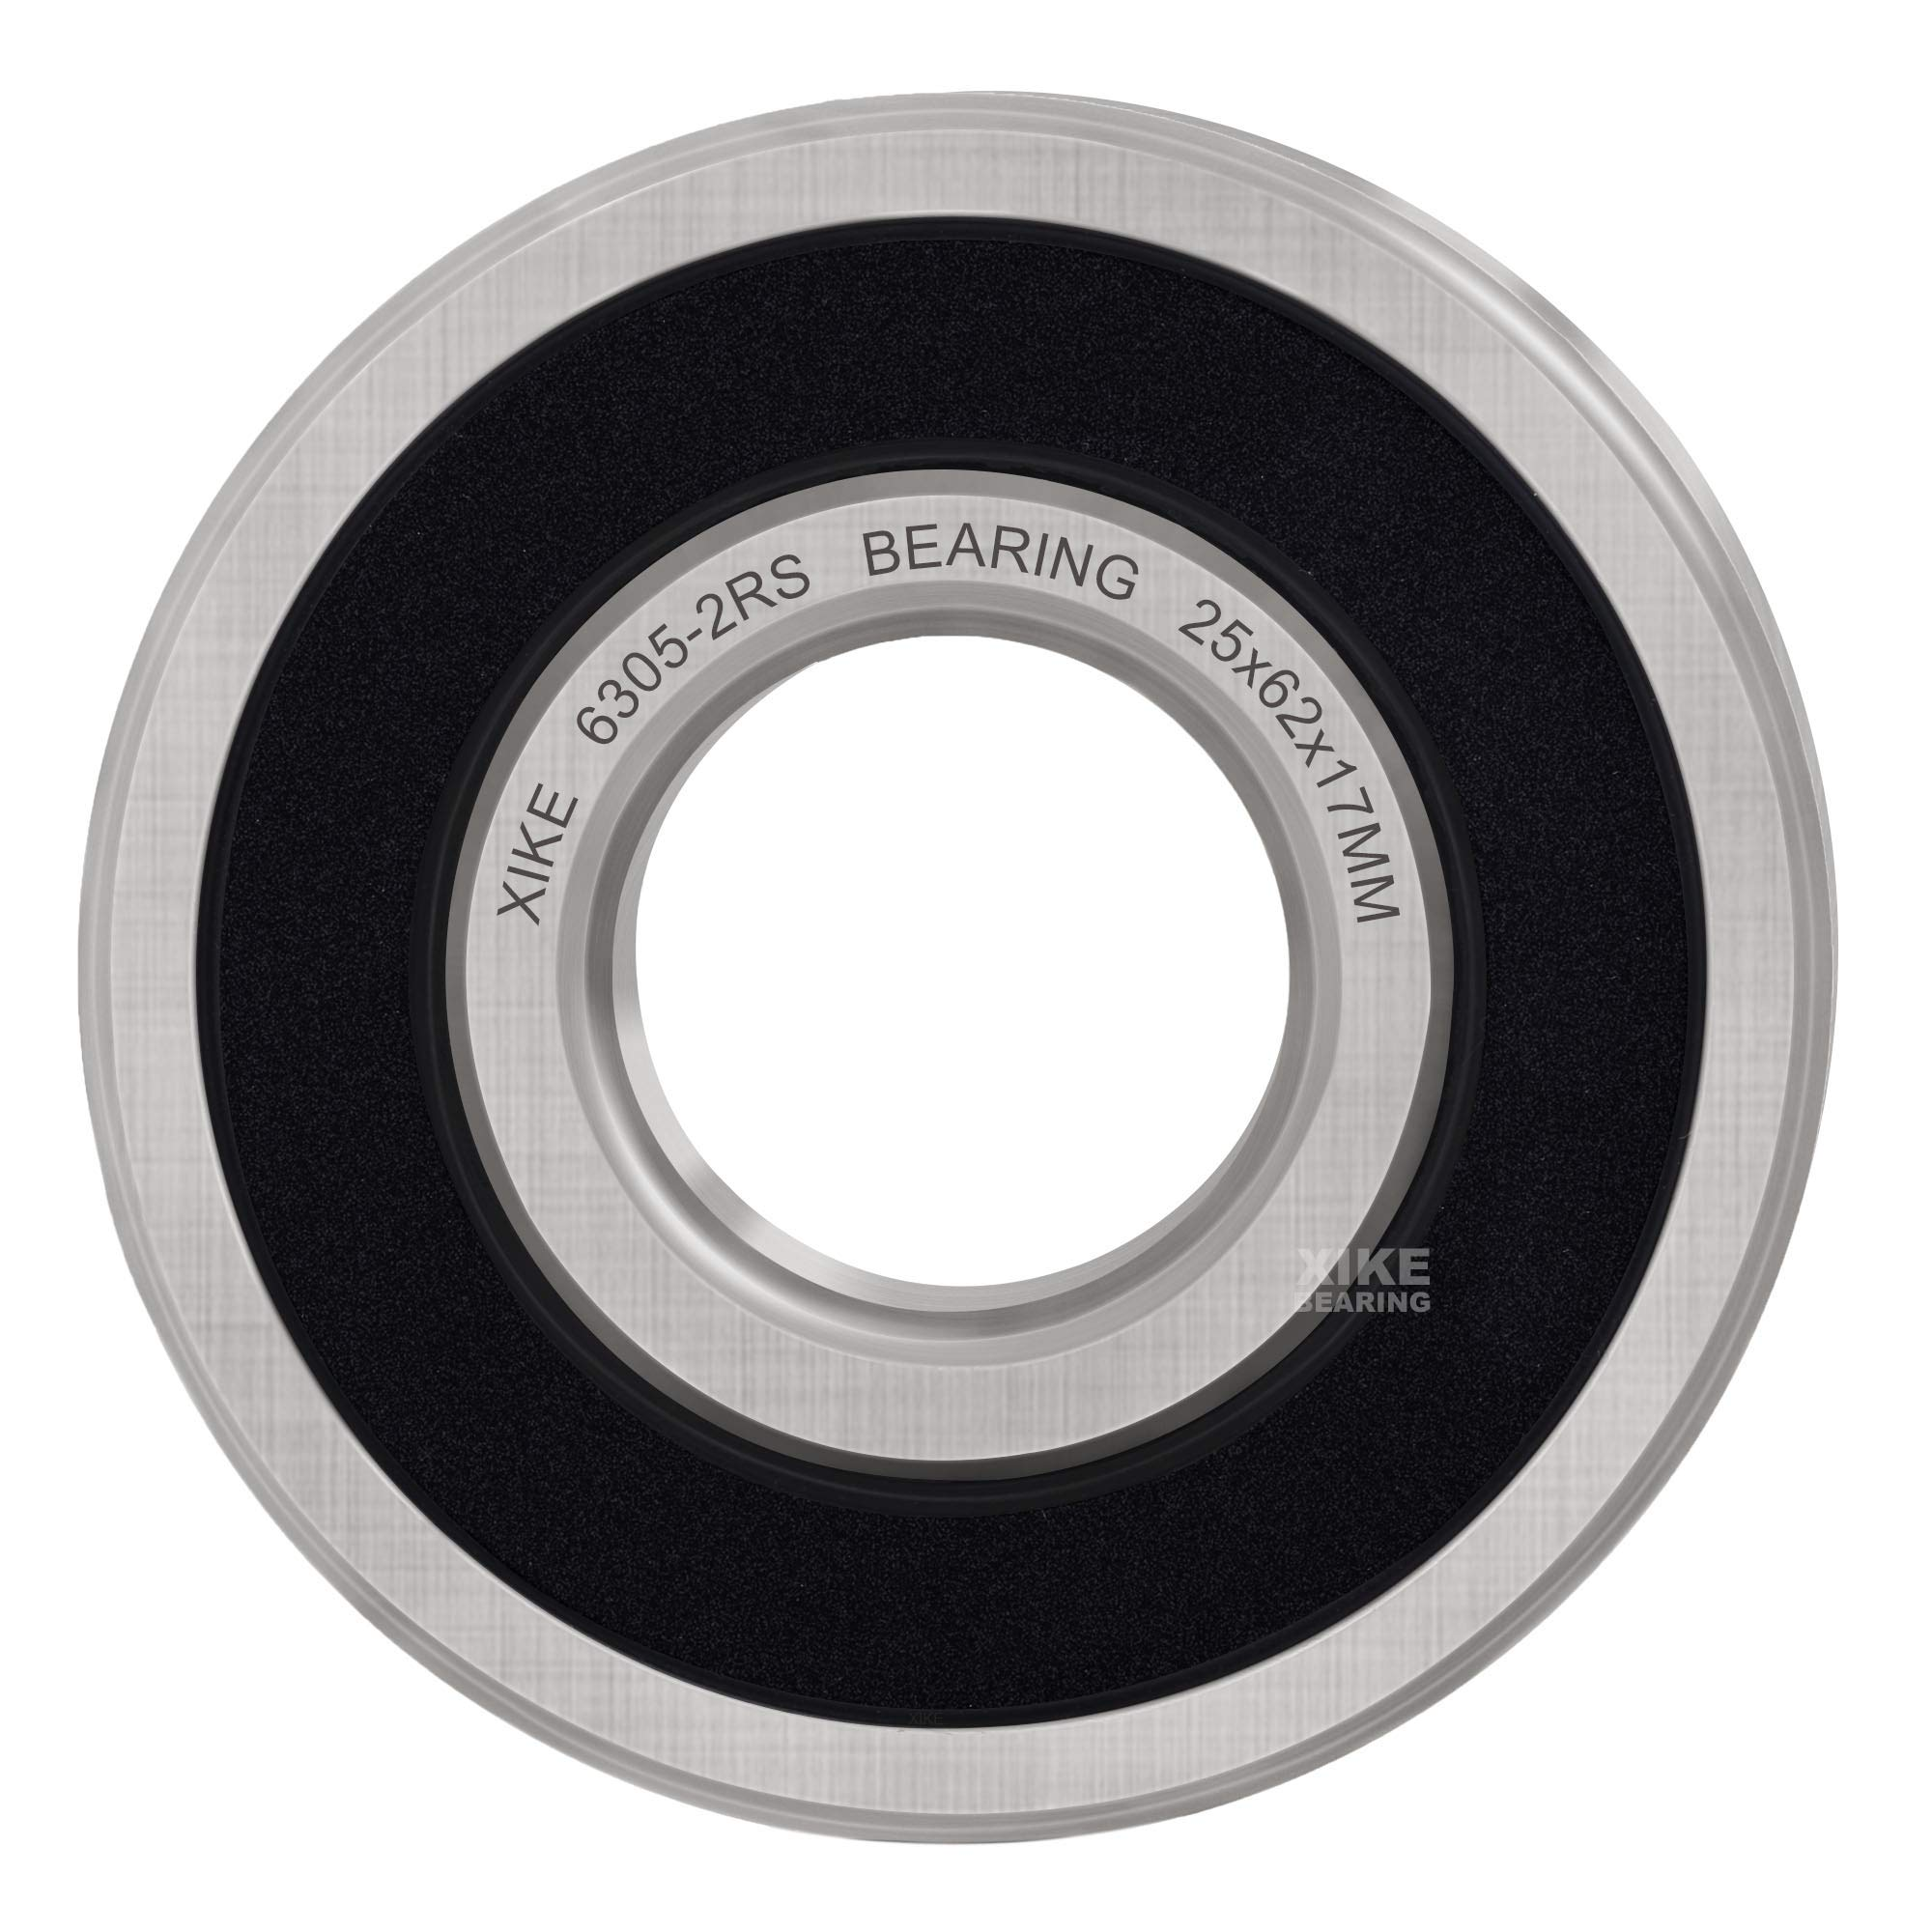 XiKe 4036ER2004A, 4280FR4048E and 4280FR4048L Front Load Washer Tub Bearing & Seal Kit Rotate Quiet and Durable, Replacement for LG and Kenmore, 1267489, AH3522855, AP4438637, EA3522855, PS3522855.